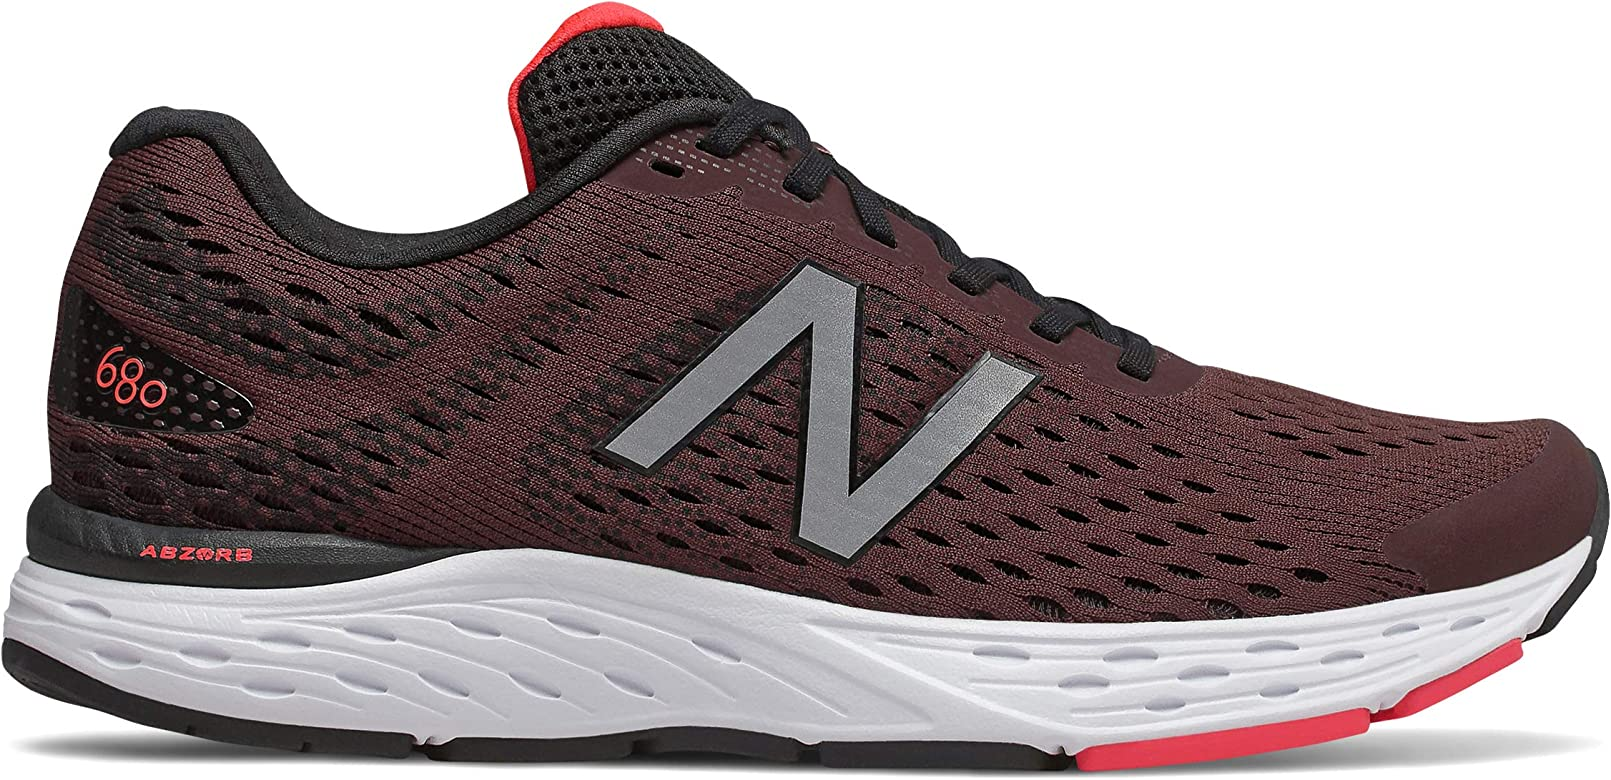 New Balance M680CH6 - Zapatillas de running (extra anchas, ancho 4E, color burdeo), color Rojo, talla 41.5 EU: Amazon.es: Zapatos y complementos